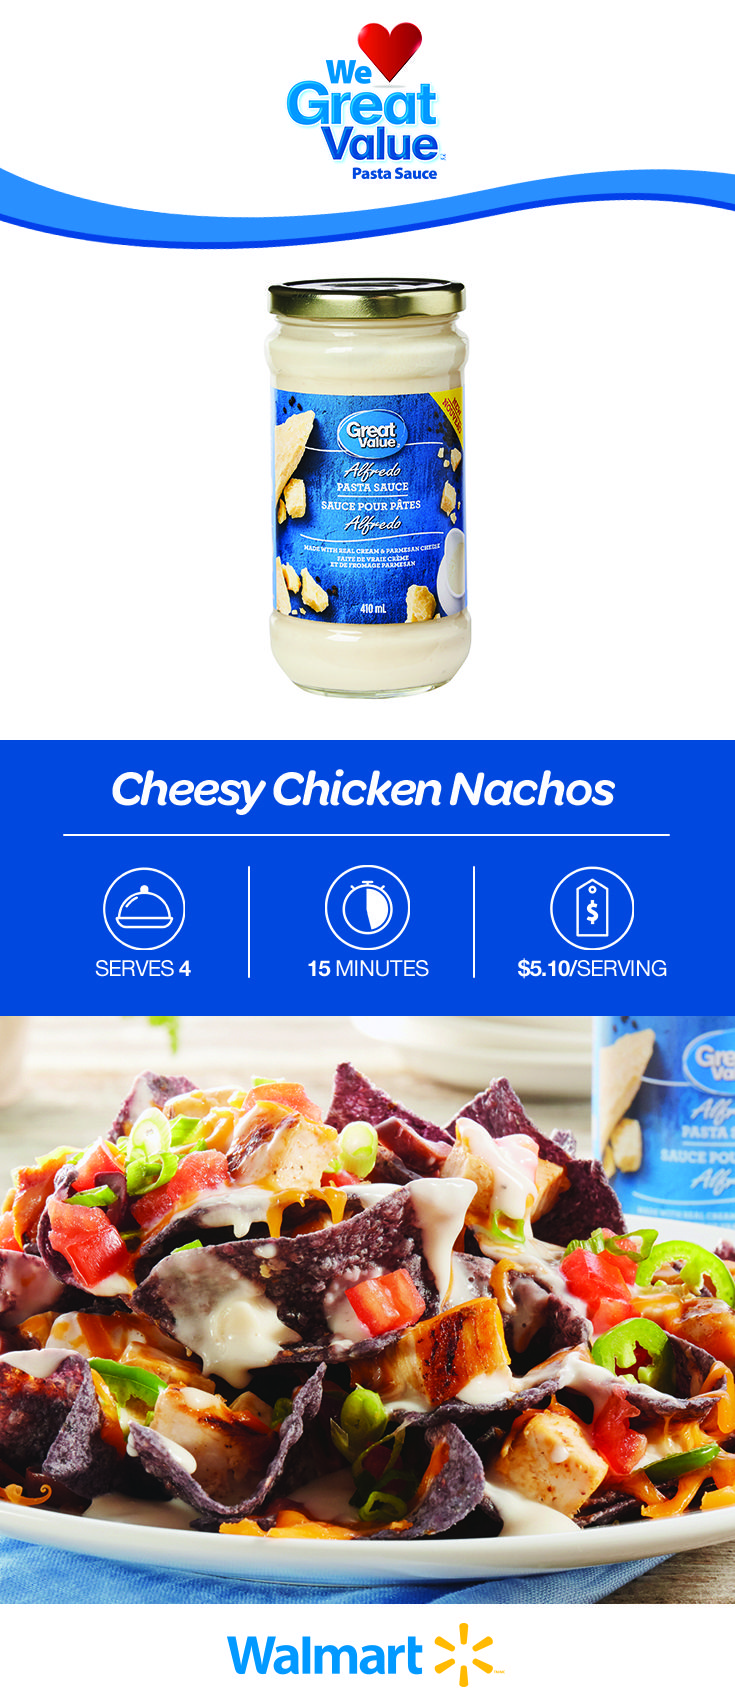 Cheesy Chicken Nachos with a deliciously affordable twist: Our Great Value Alfredo Pasta Sauce! Click on the link to find the recipe. #WeLoveGreatValue #chickennachos #cheesenachos #summerrecipes #summerappetizers #nachos #cheesychickennachos #nachorecipes #cheesenachorecipes